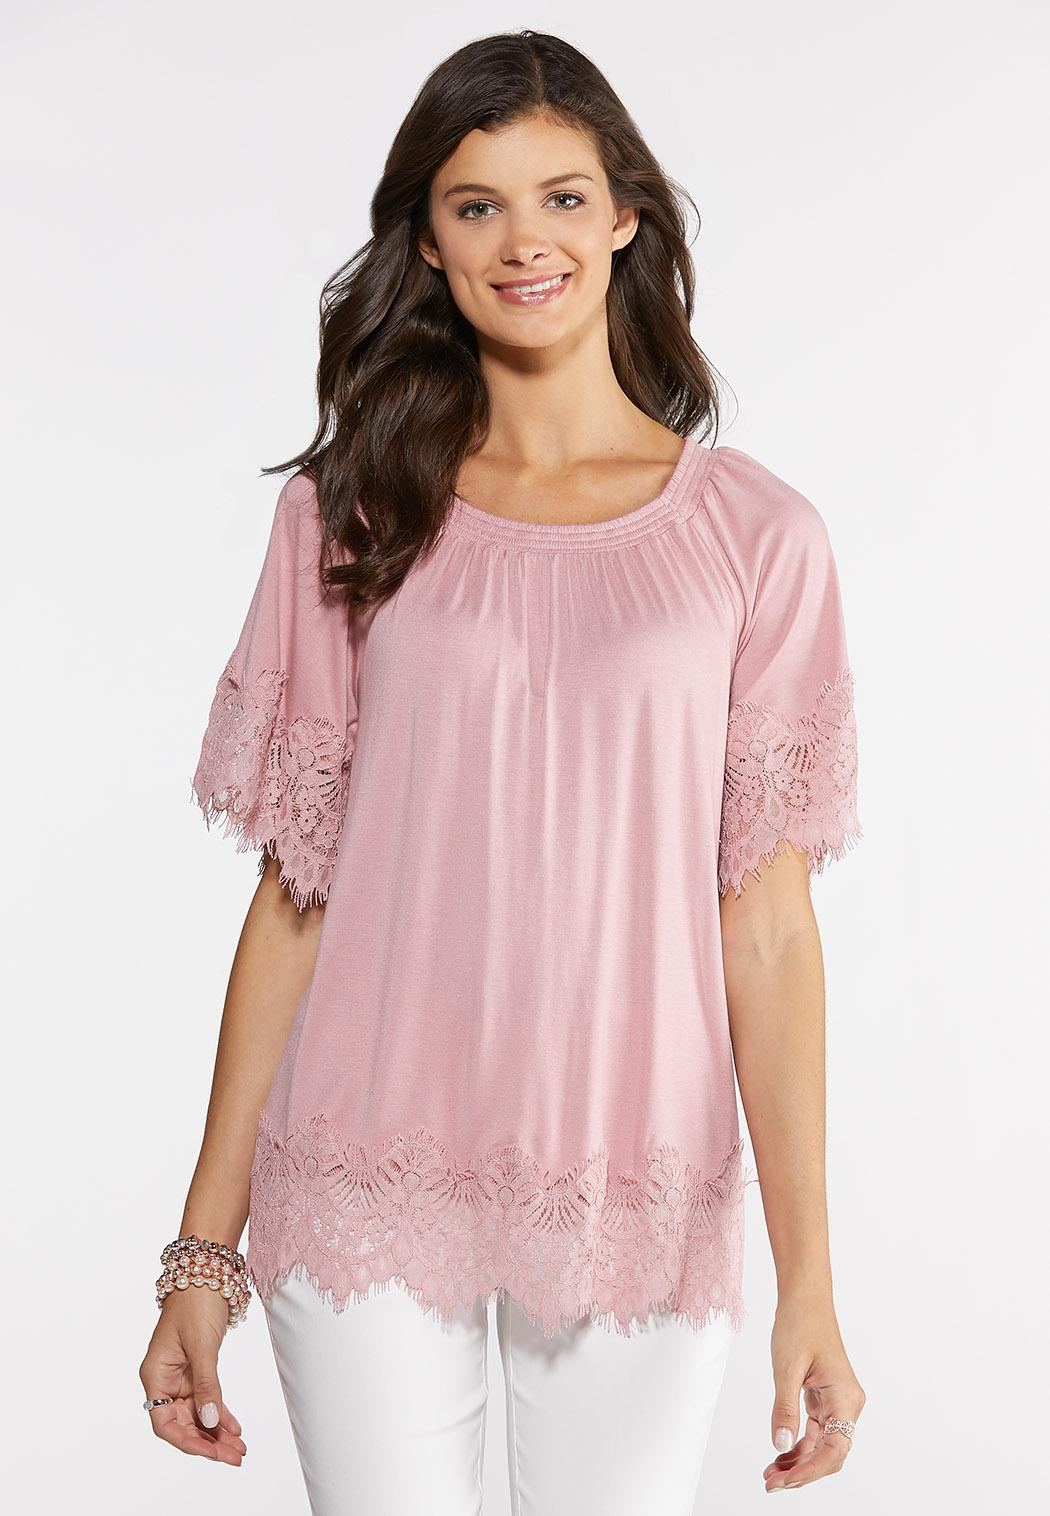 e0c986a7625221 Rose Lace Trim Top Tees & Knit Tops Cato Fashions